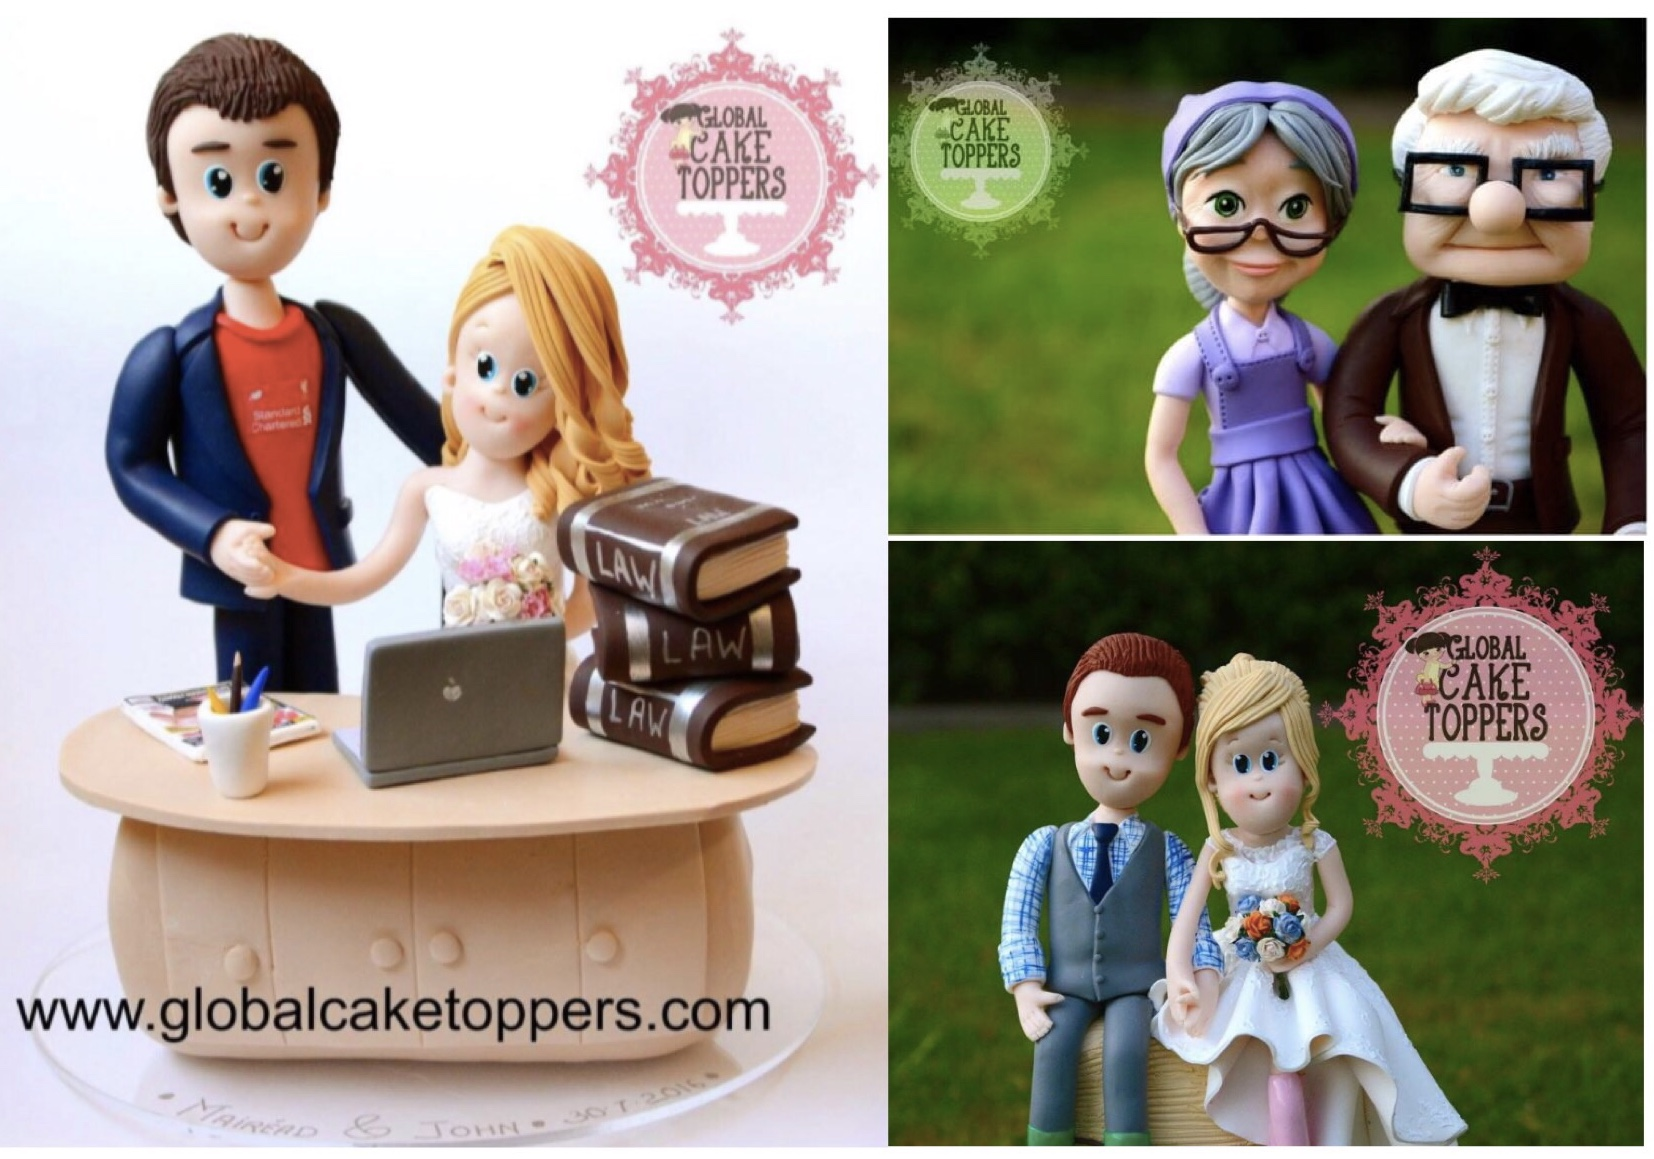 Wedding Cake toppers for keeps